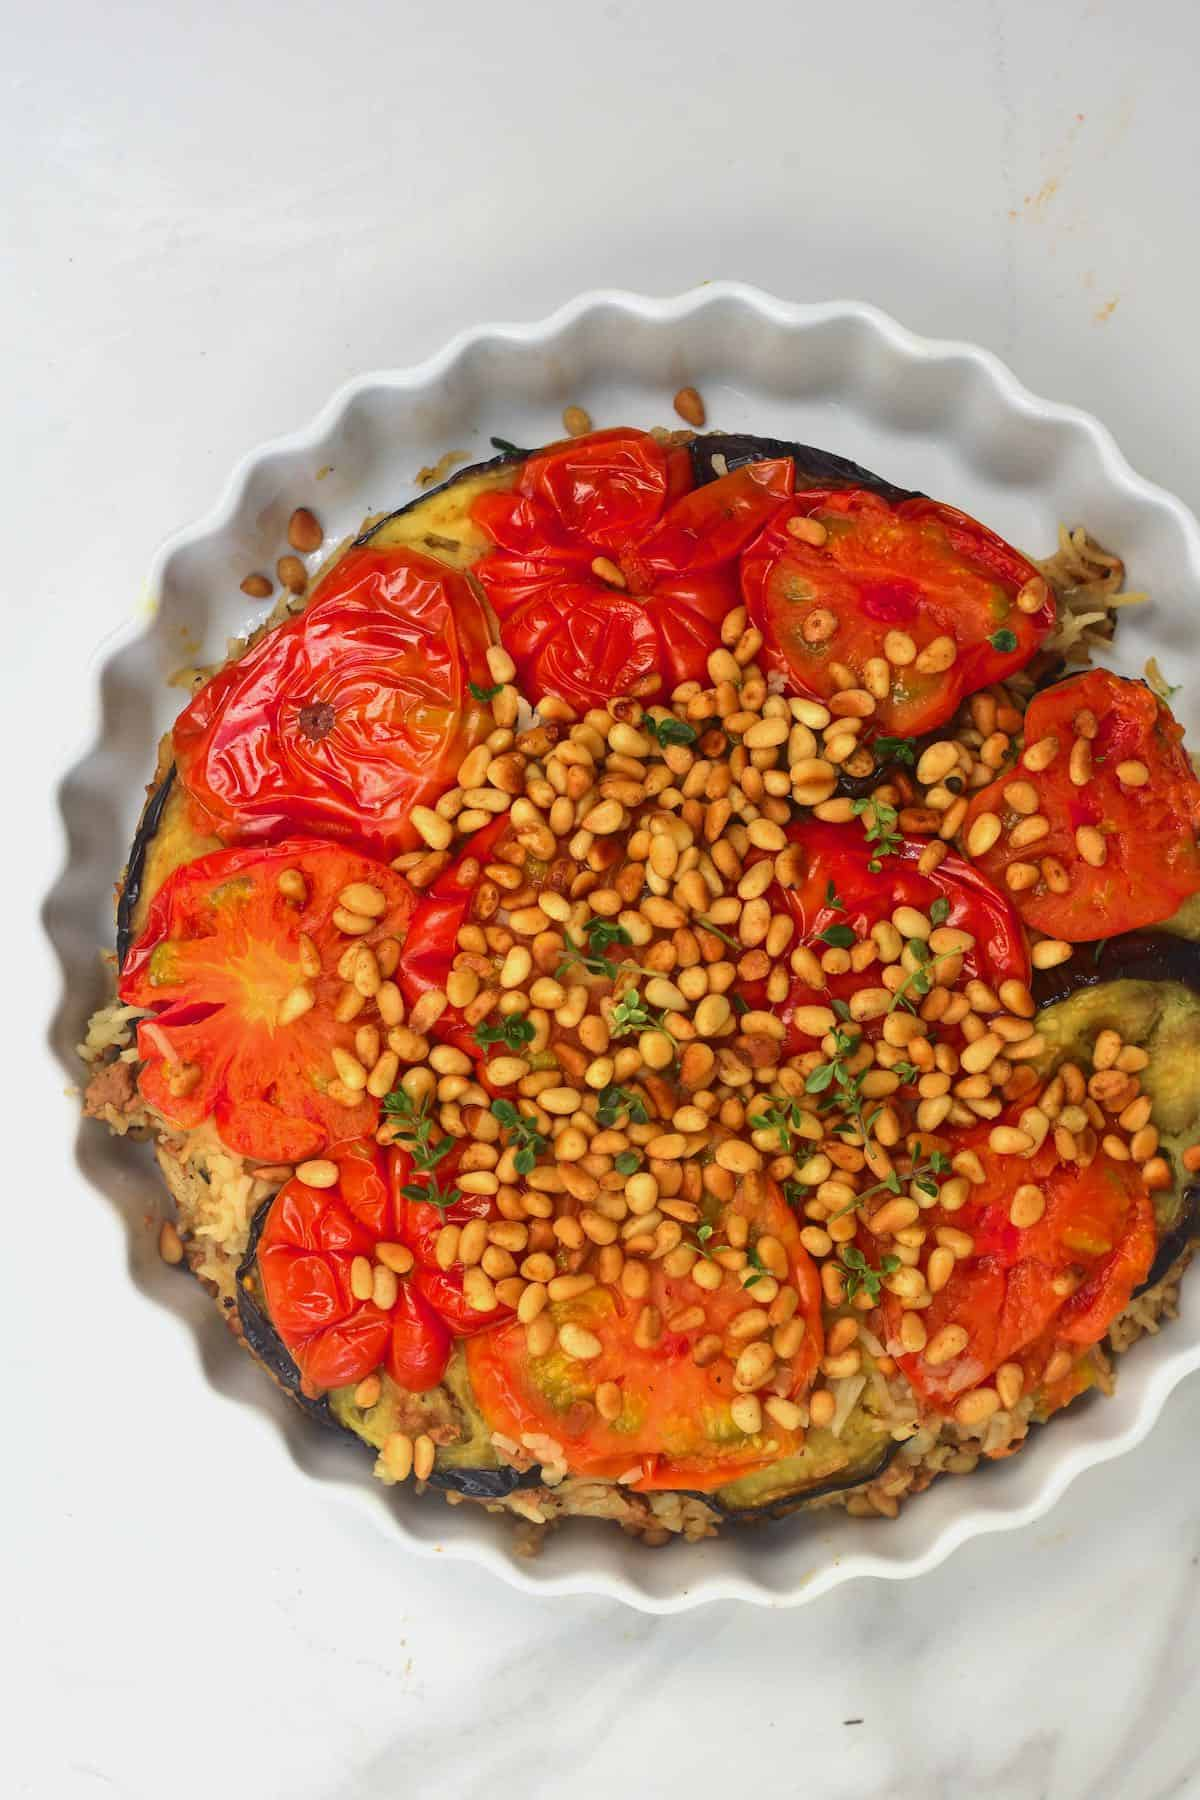 Maqluba topped with pine nuts